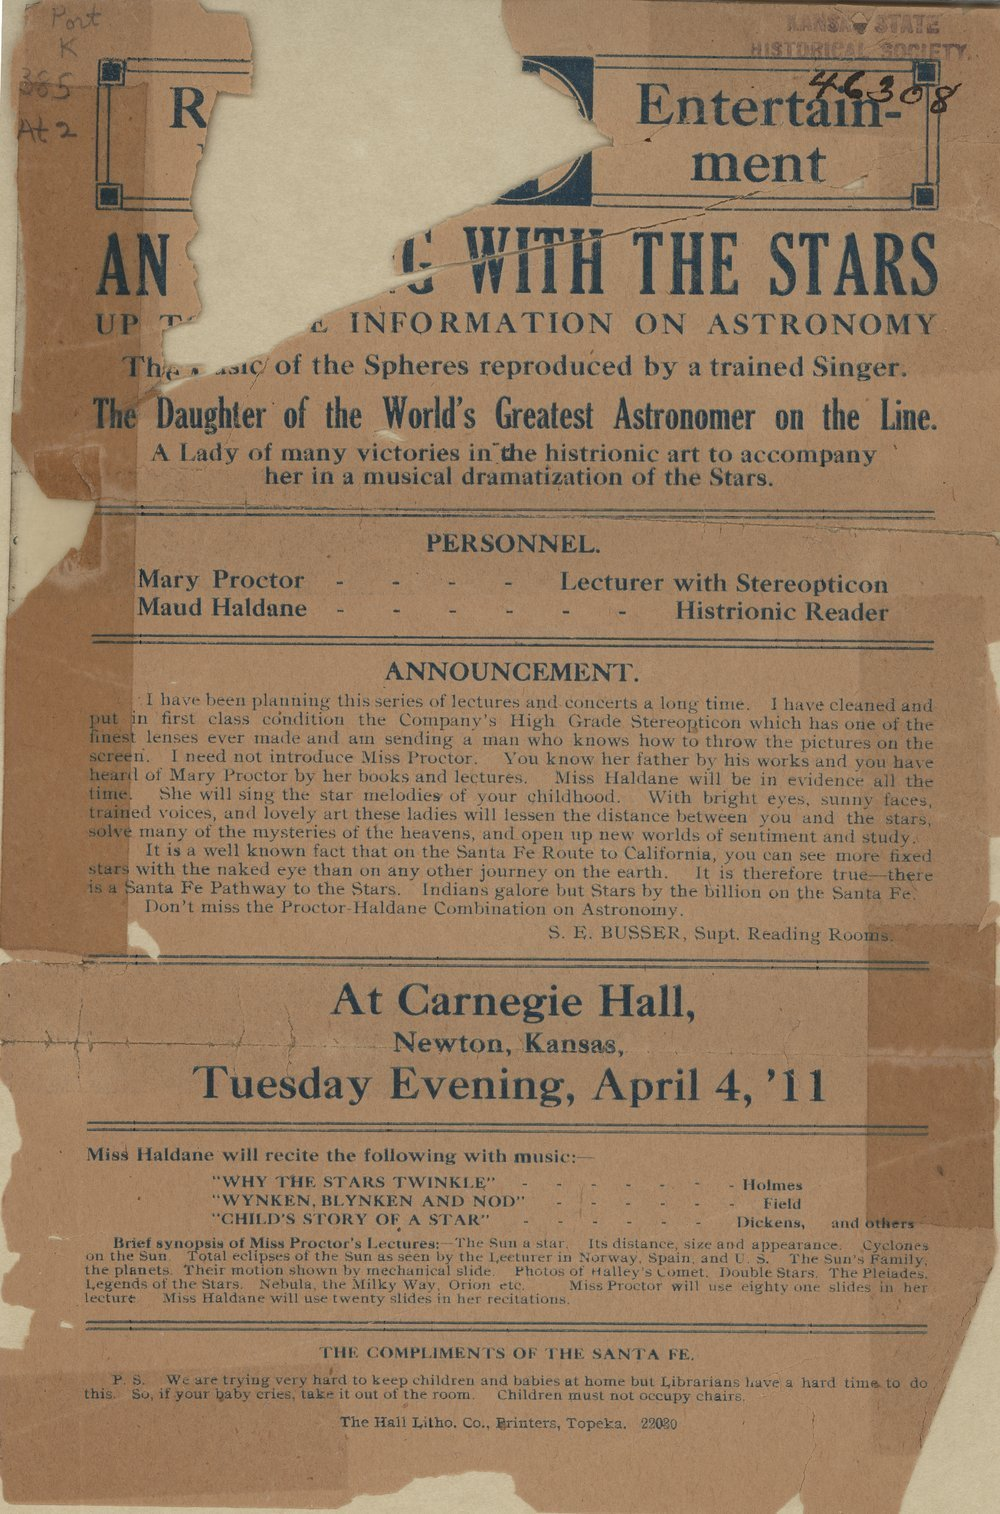 An evening with the stars, Atchison, Topeka & Santa Fe Railway